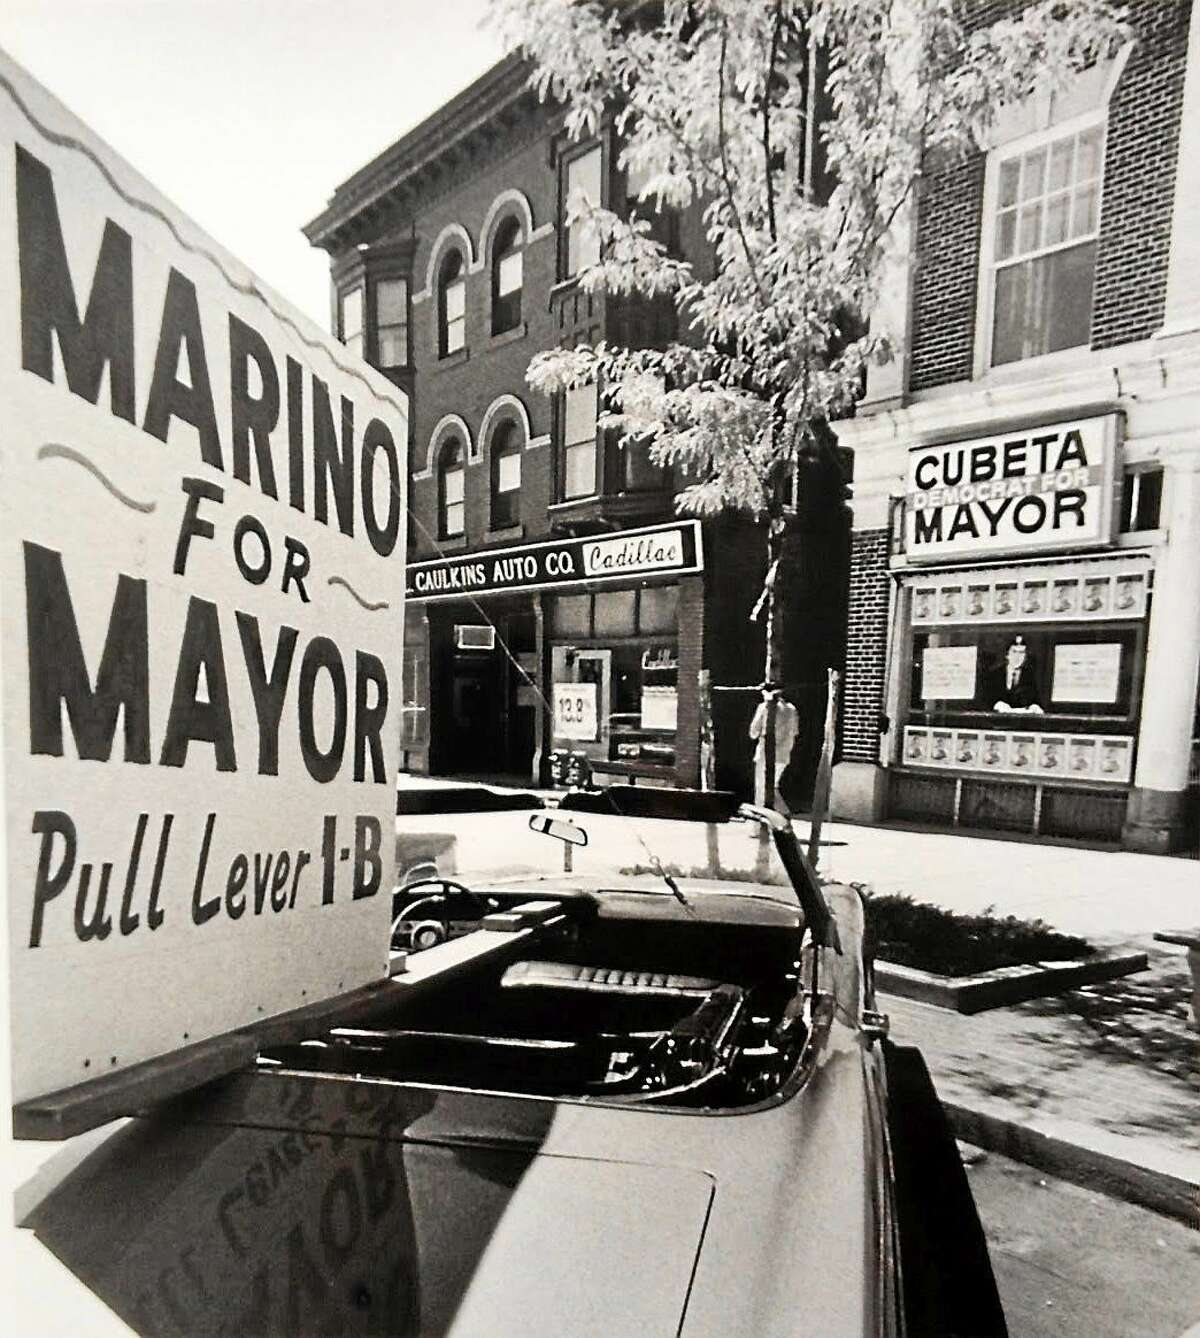 According to former Mayor Michael Cubeta, in 1981 when he was running for re-election, longtime Middletown politician Anthony Marino came out of retirement to primary him for the Democratic nomination. Cubeta's headquarters was on the west side of Main Street just north of Washington Street, adjacent to the current Luce's restaurant.